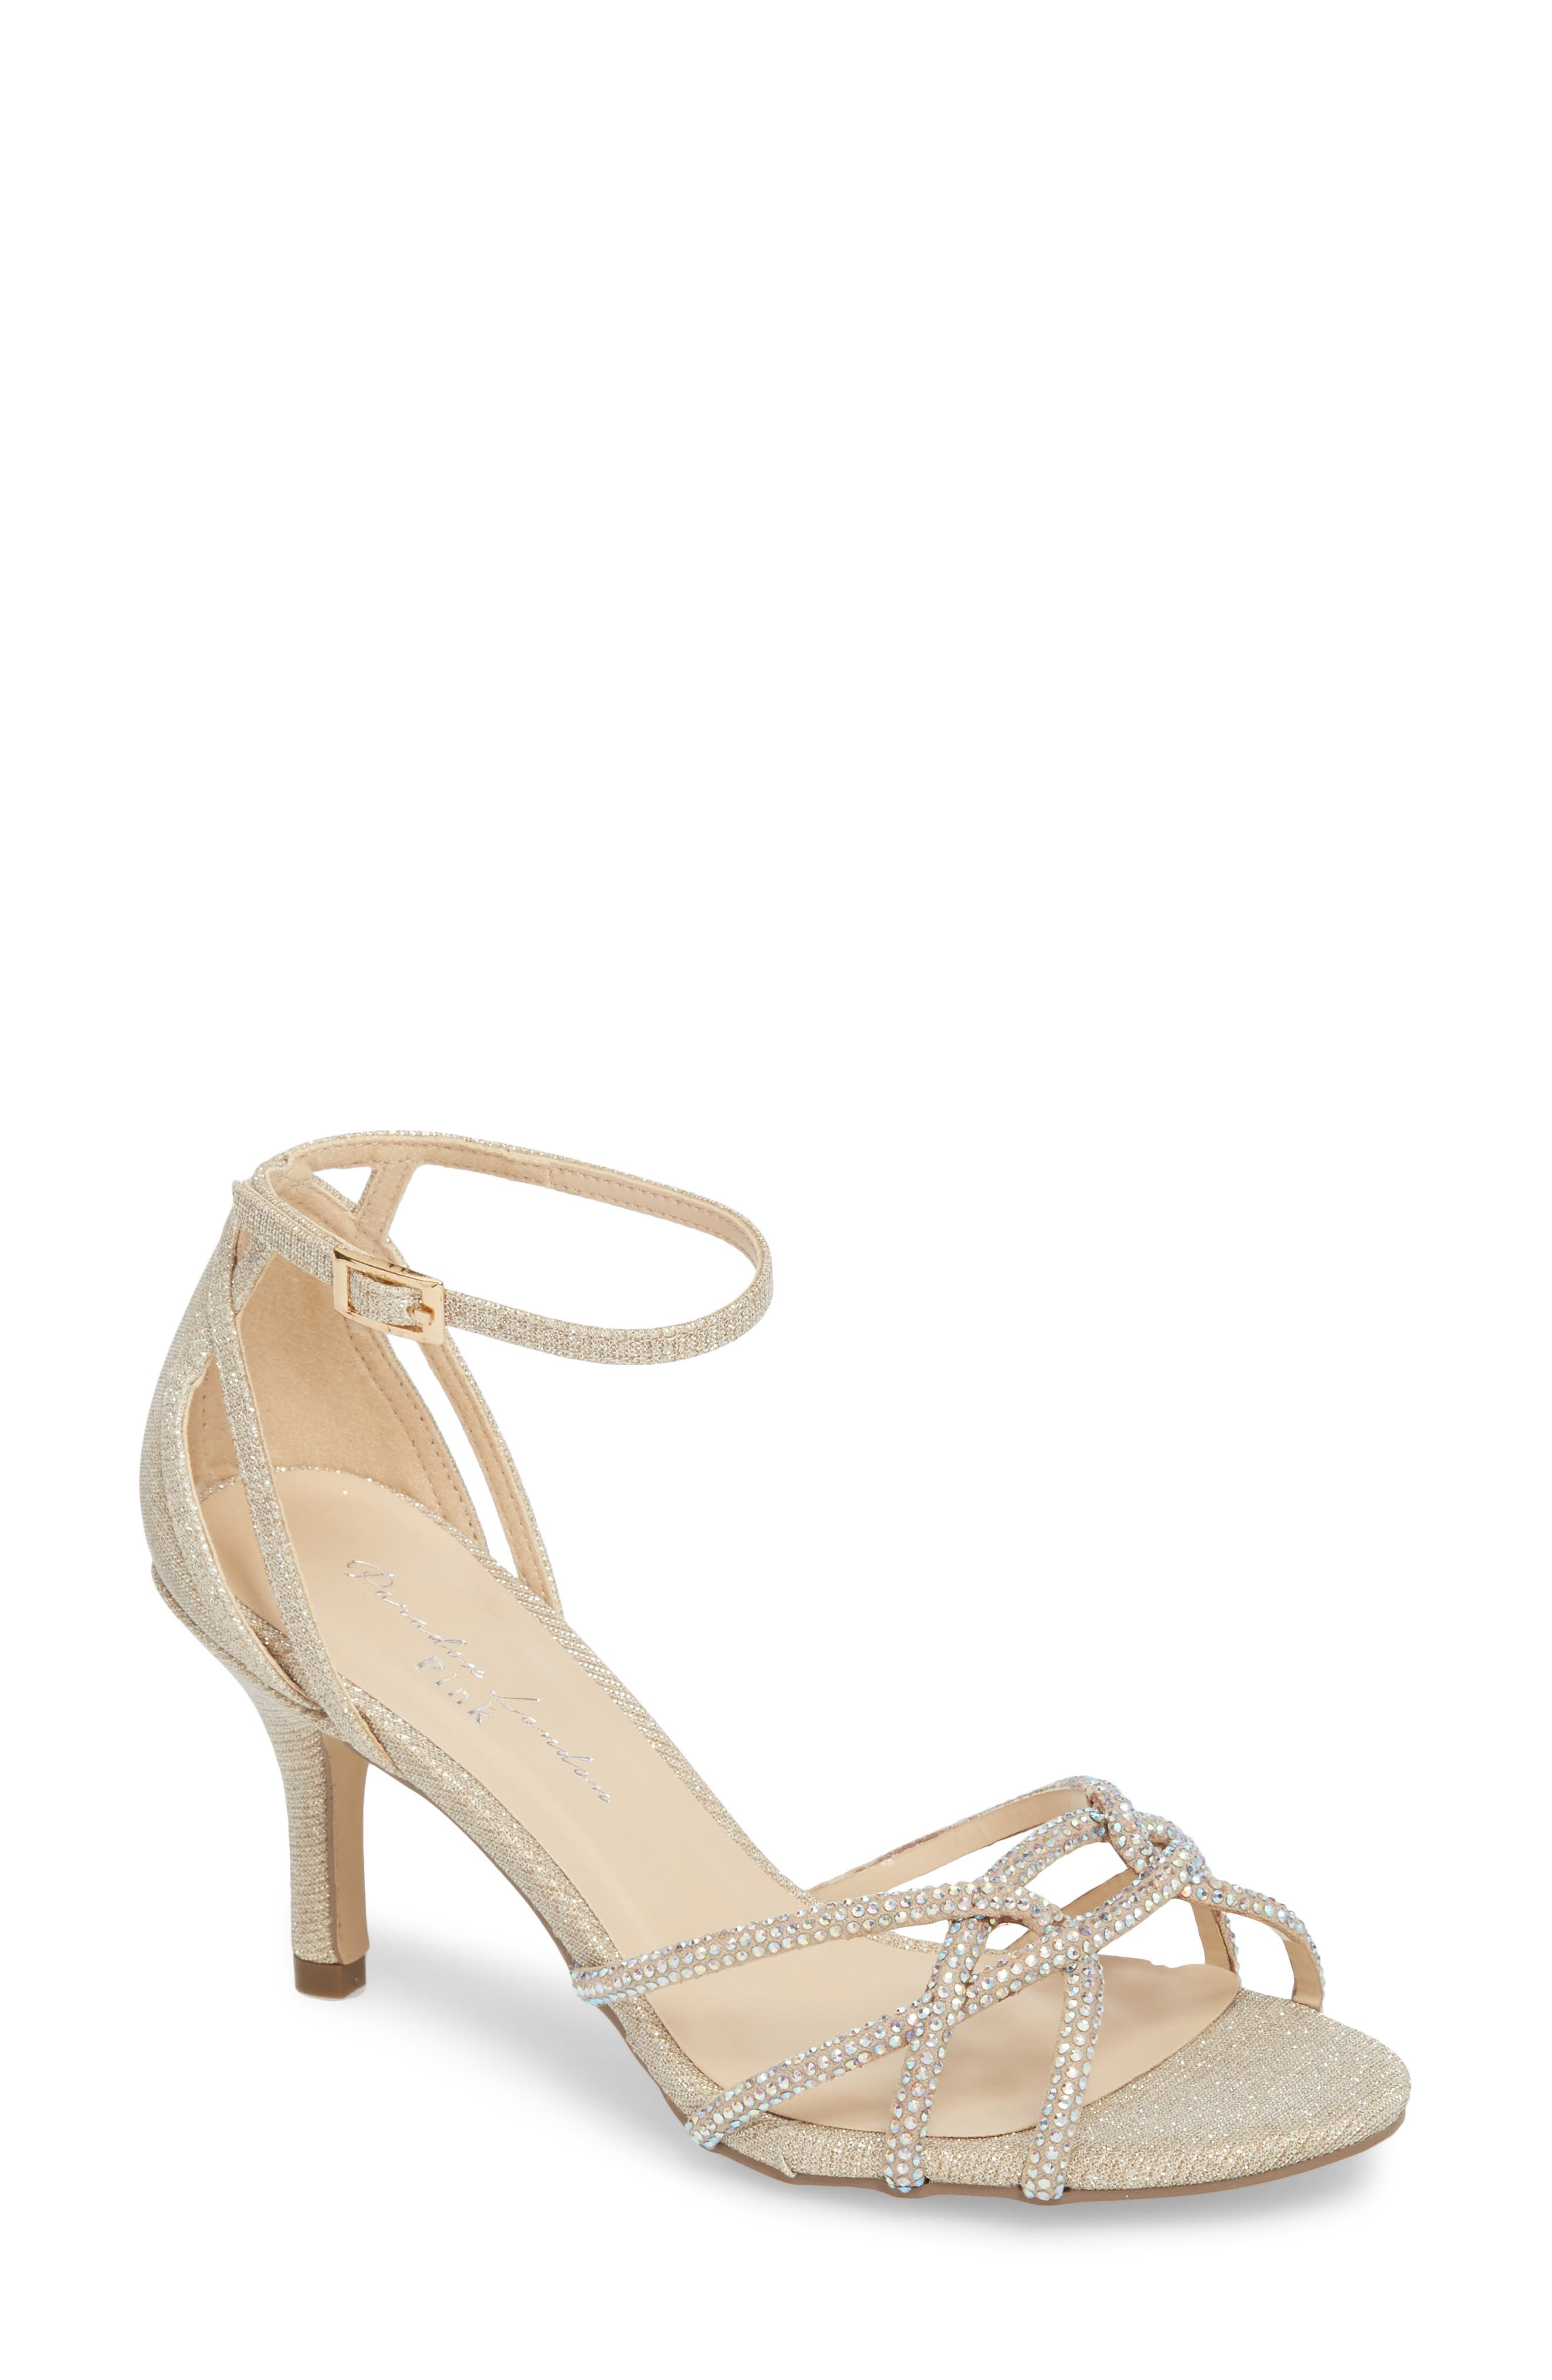 Majesty Sandal,                             Main thumbnail 1, color,                             Champagne Fabric